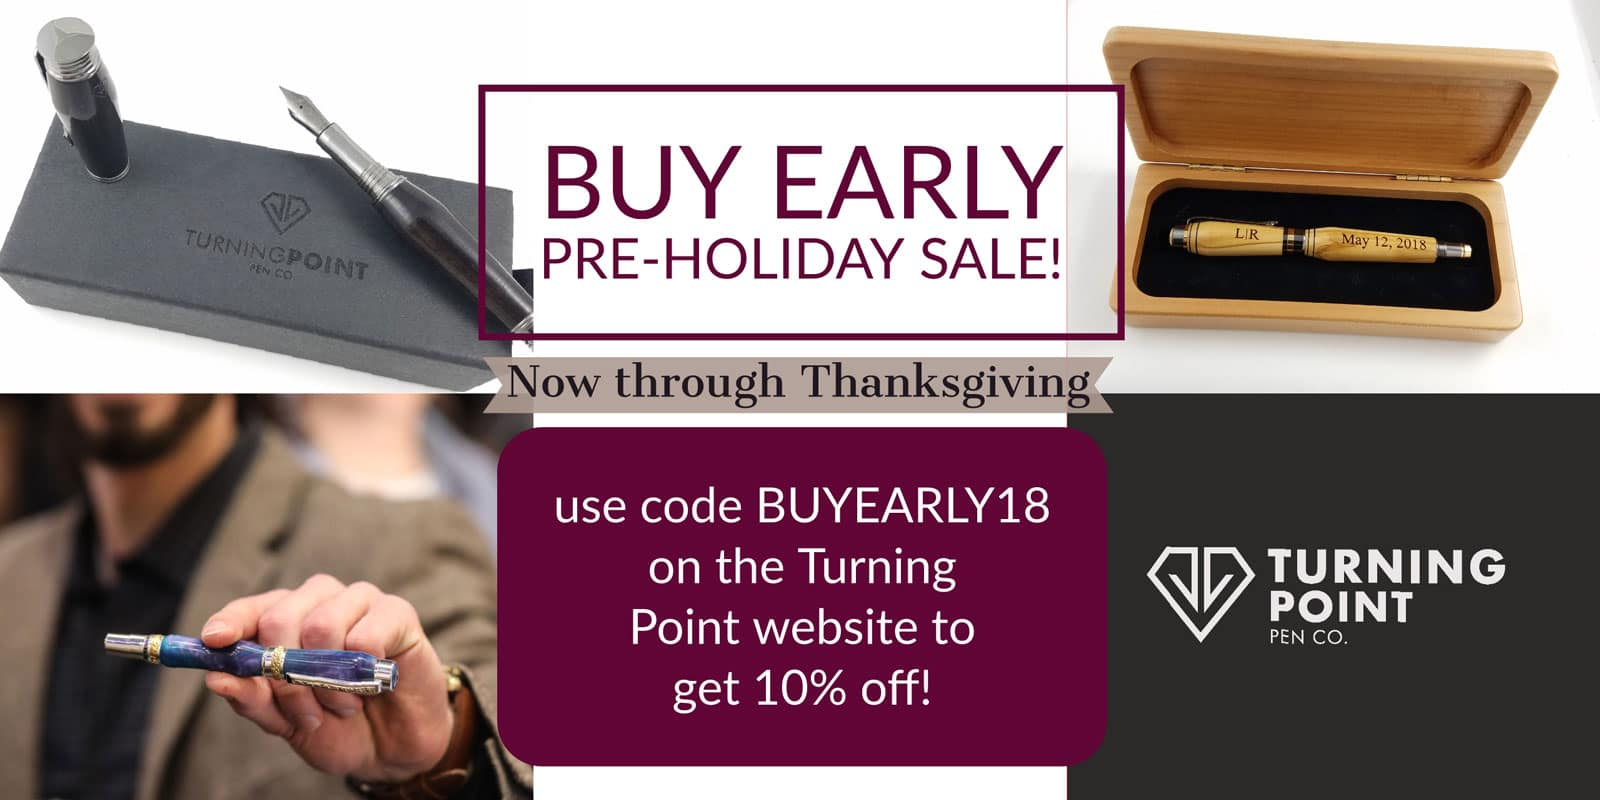 Buy Early Pre Holiday Sale 2018 Turning Point Pen Co.